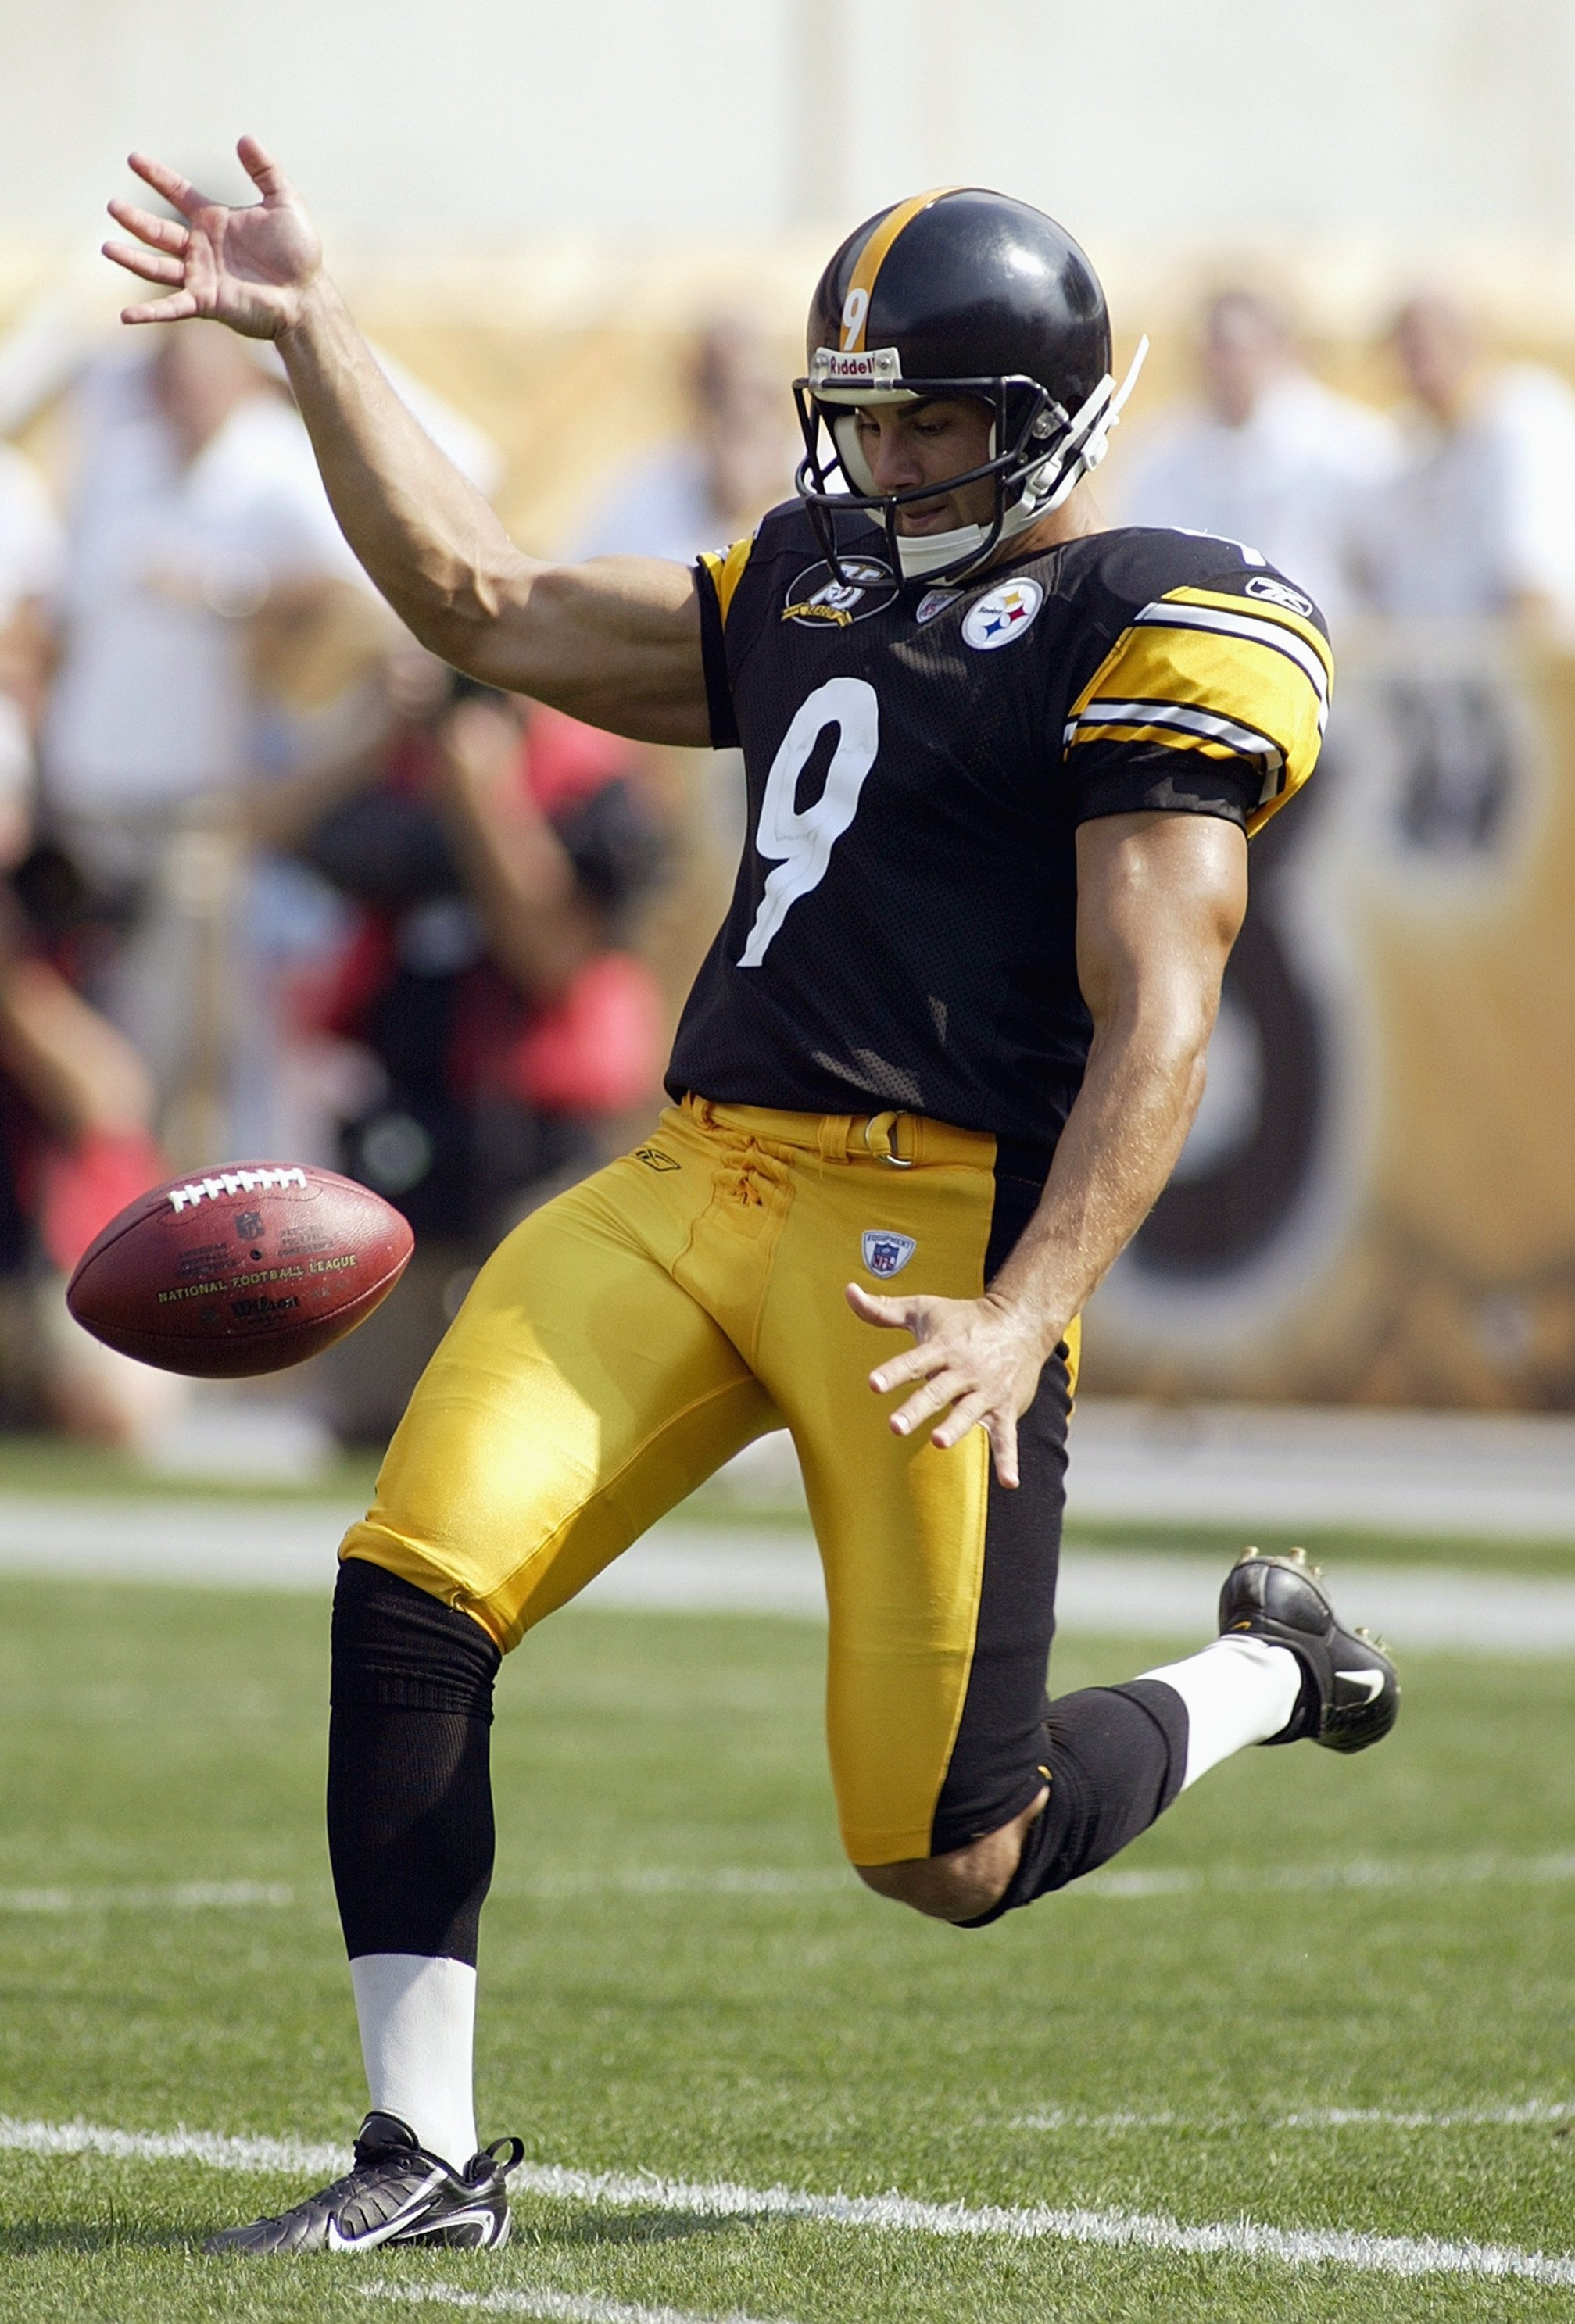 PITTSBURGH - OCTOBER 7: Daniel Sepulveda #9 of the Pittsburgh Steelers punts the ball during the NFL game against the Seattle Seahawks at Heinz Field October 7, 2007 in Pittsburgh, Pennsylvania. The Steelers won 21-0. (Photo by Rick Stewart/Getty Images)